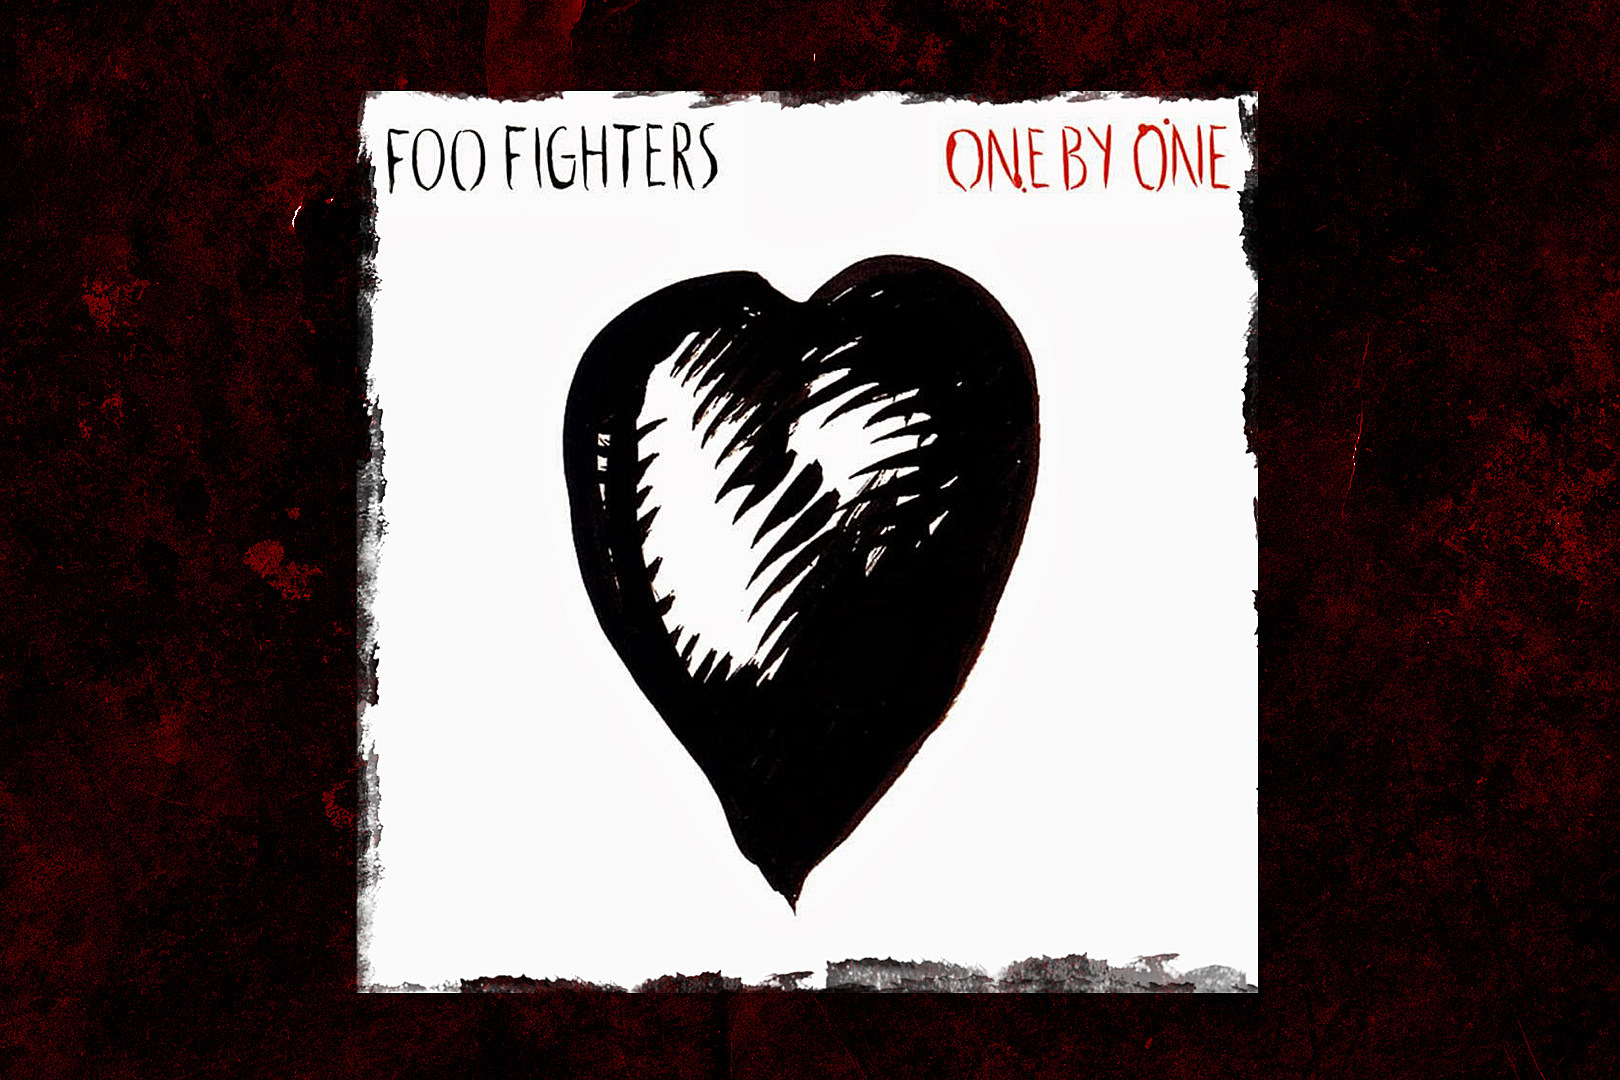 2a990e73e5ffa 16 Years Ago: Foo Fighters Release 'One By One' Album